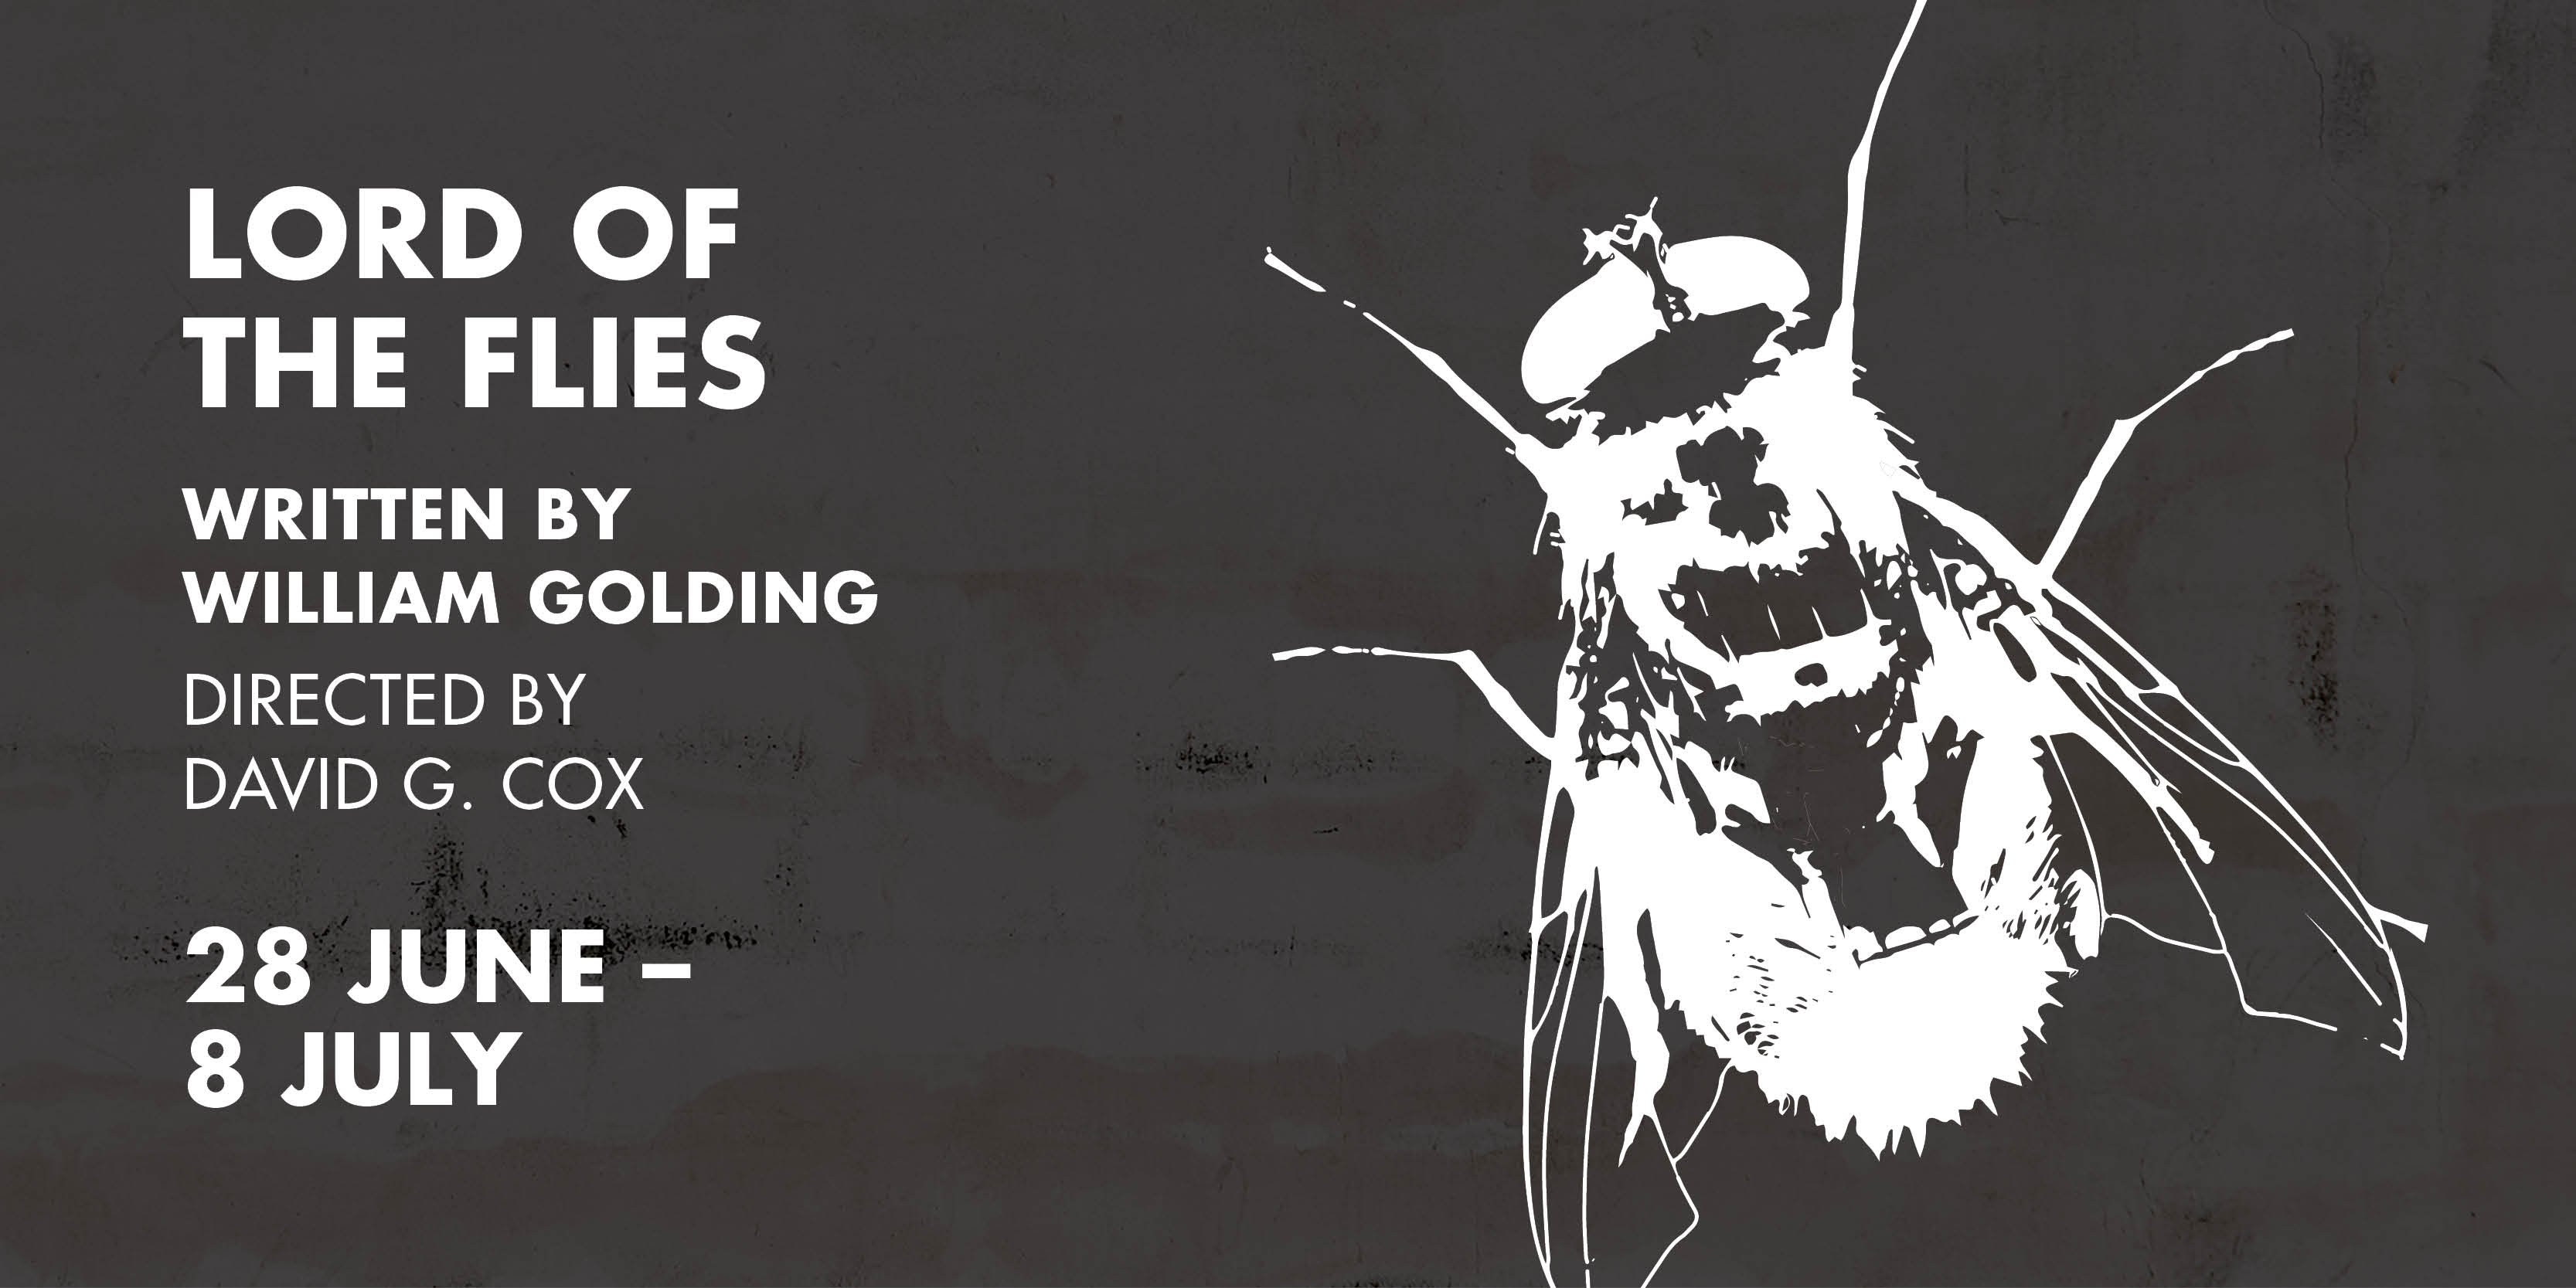 Lord of the Flies promo image